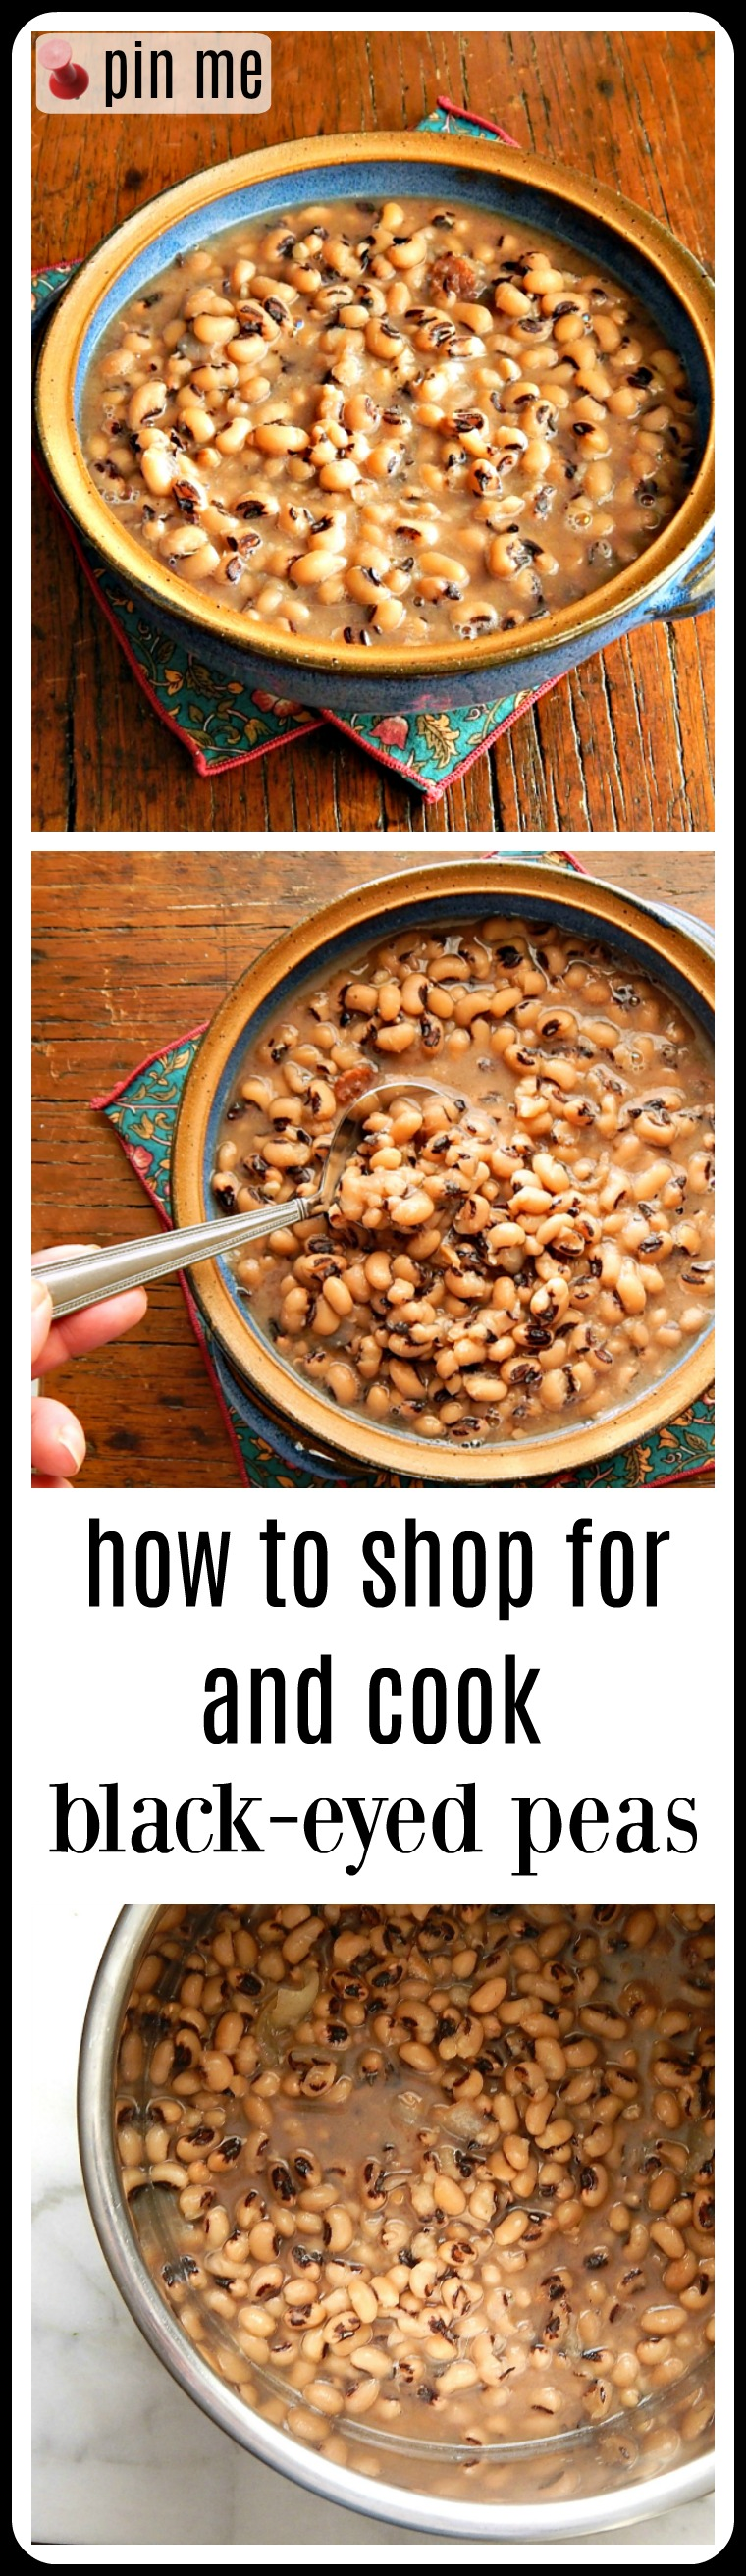 Black-Eyed Peas: What you need to know about cooking stove-top, instant pot or slow cooker